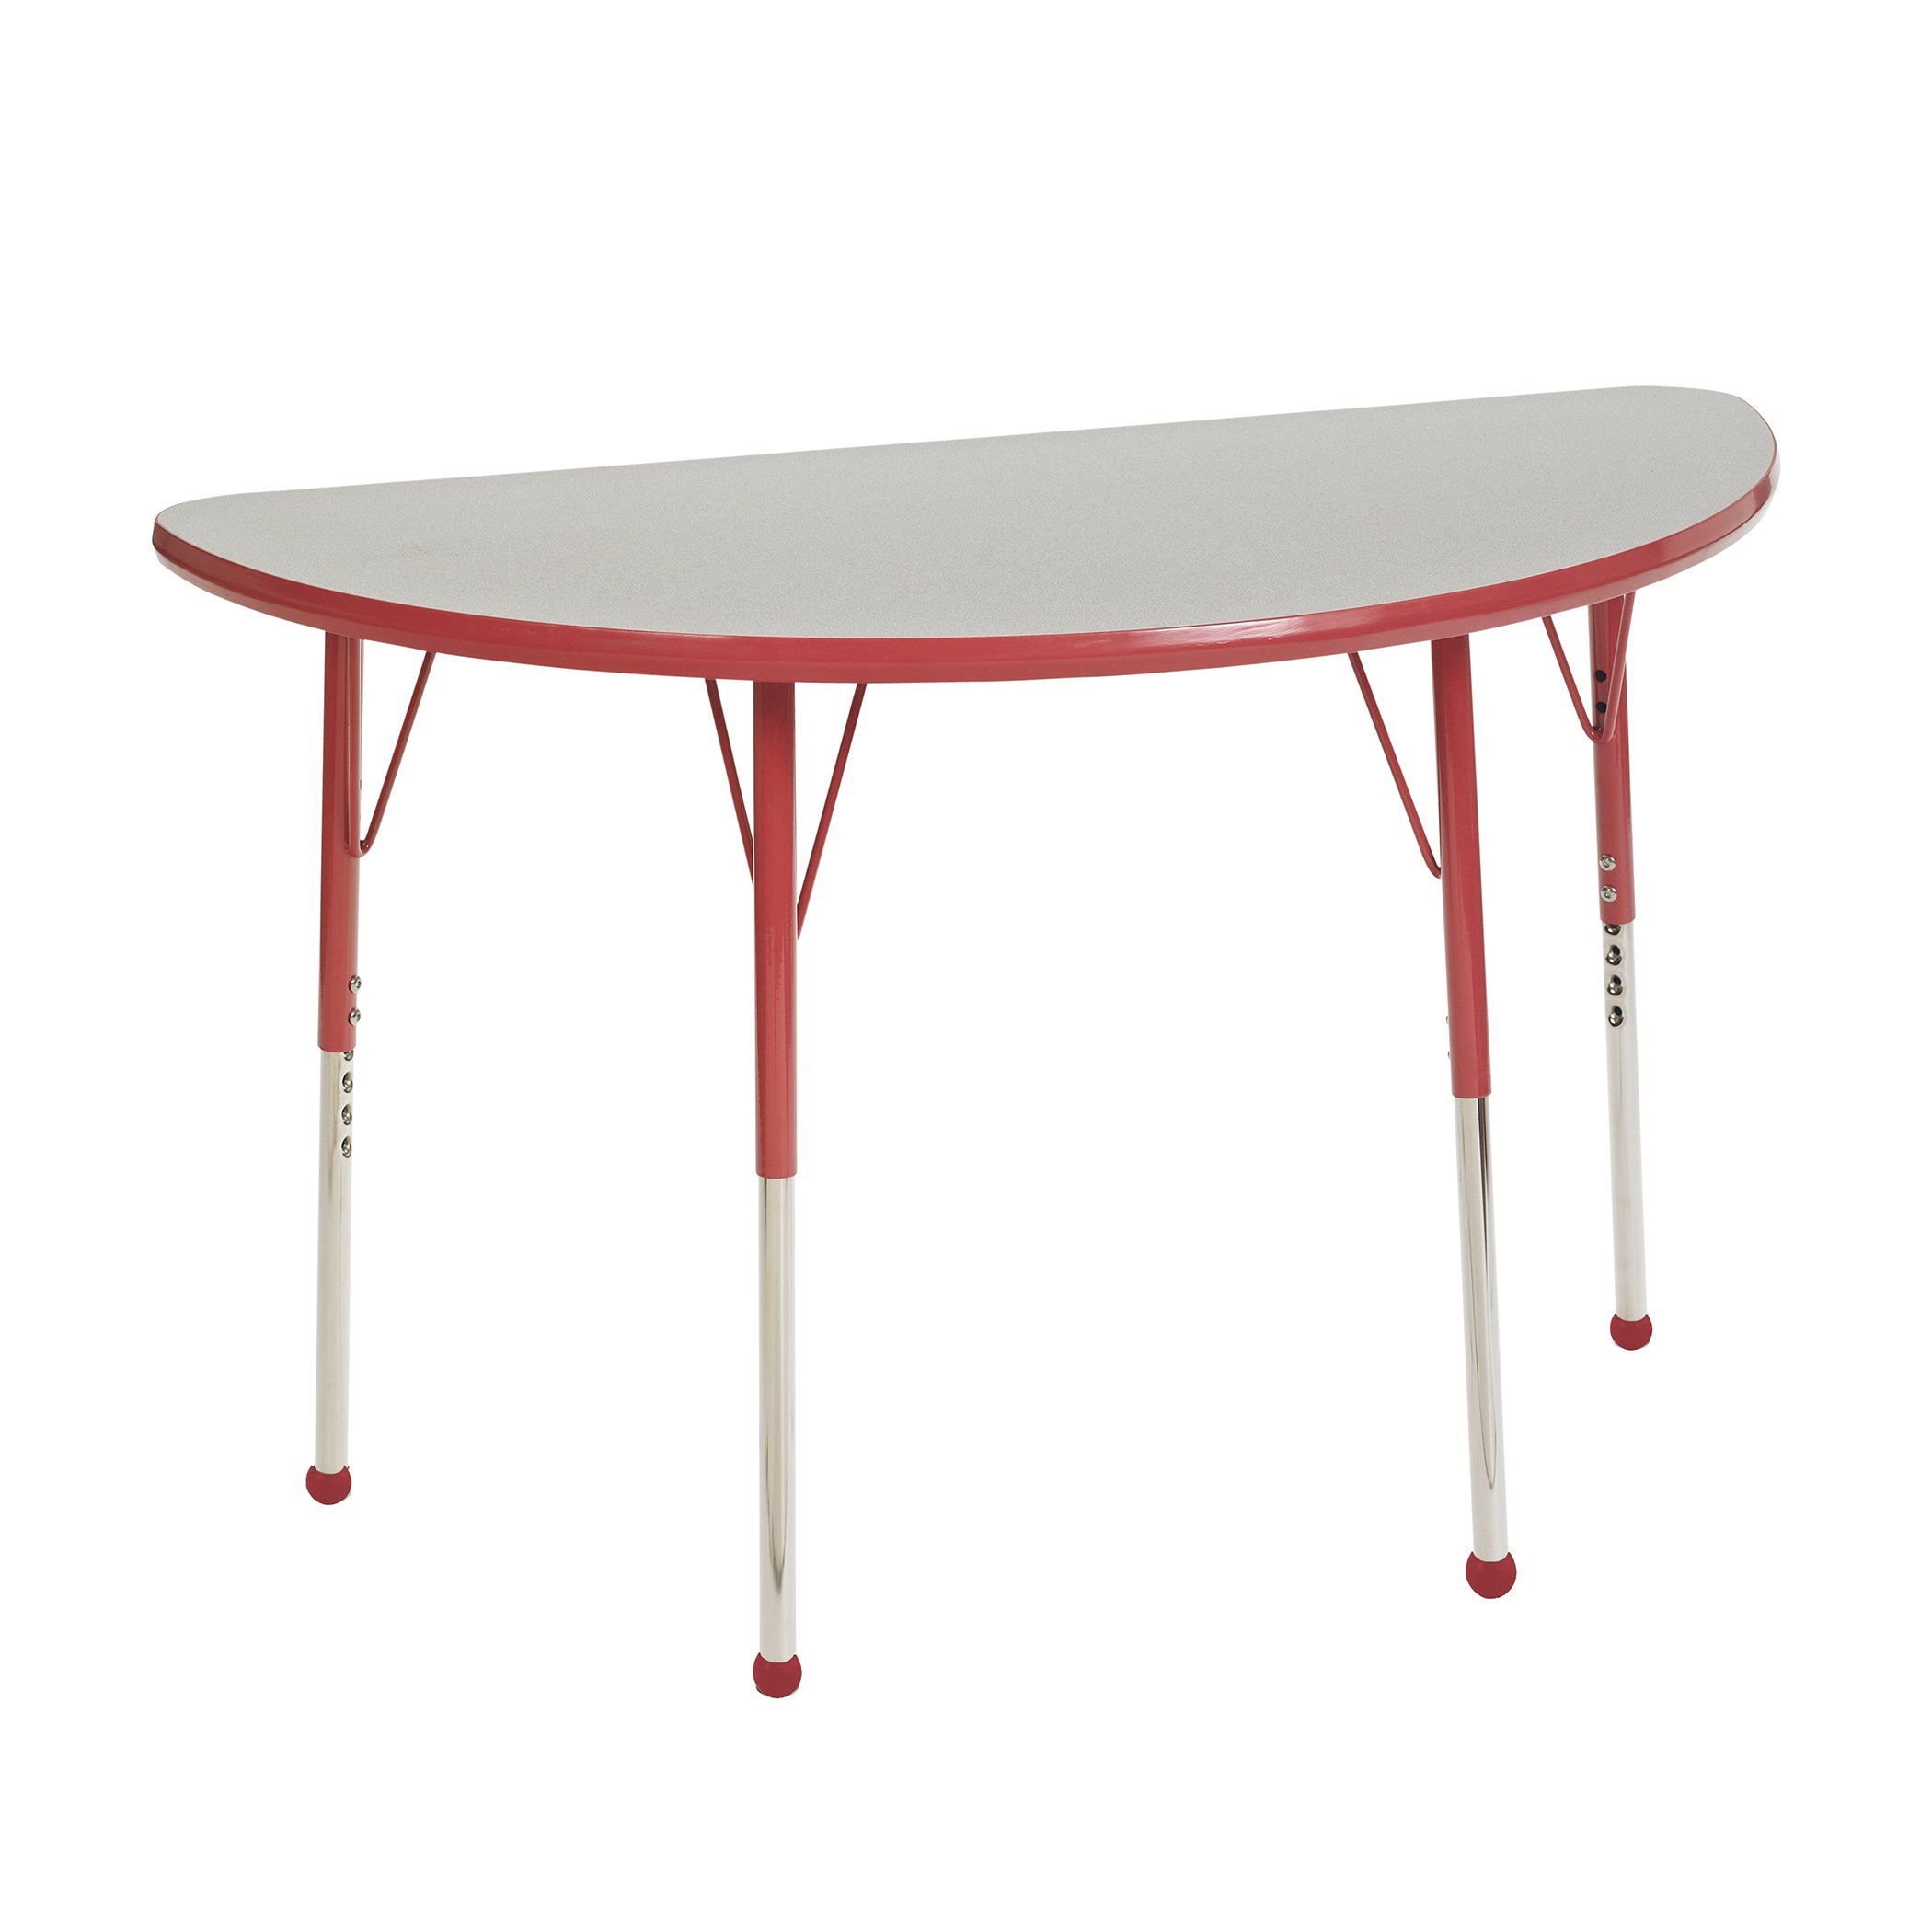 ECR4Kids Mesa Thermo-fused 24'' x 48'' Half Round School Activity Table, Standard Legs w/ Ball Glides, Adjustable Height 19-30 inch (Grey/Red)